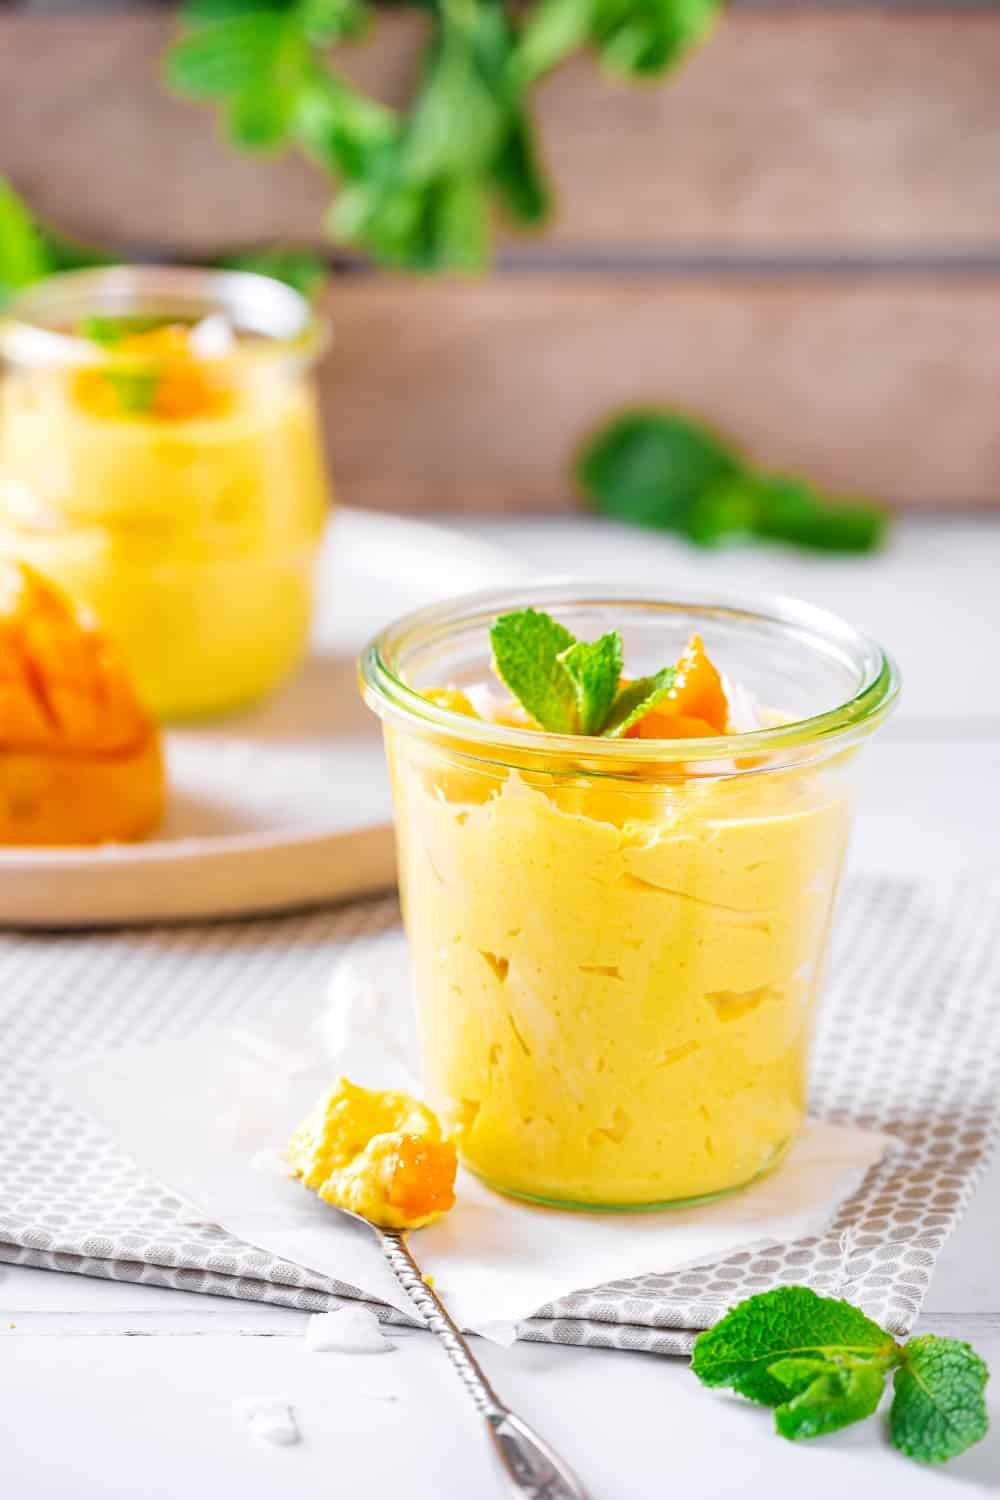 A glass cup filled with mango mousse on a napkin set on a tablecloth on the white table. Hey spoon with a scoop of mango mousse on it is on the napkin.